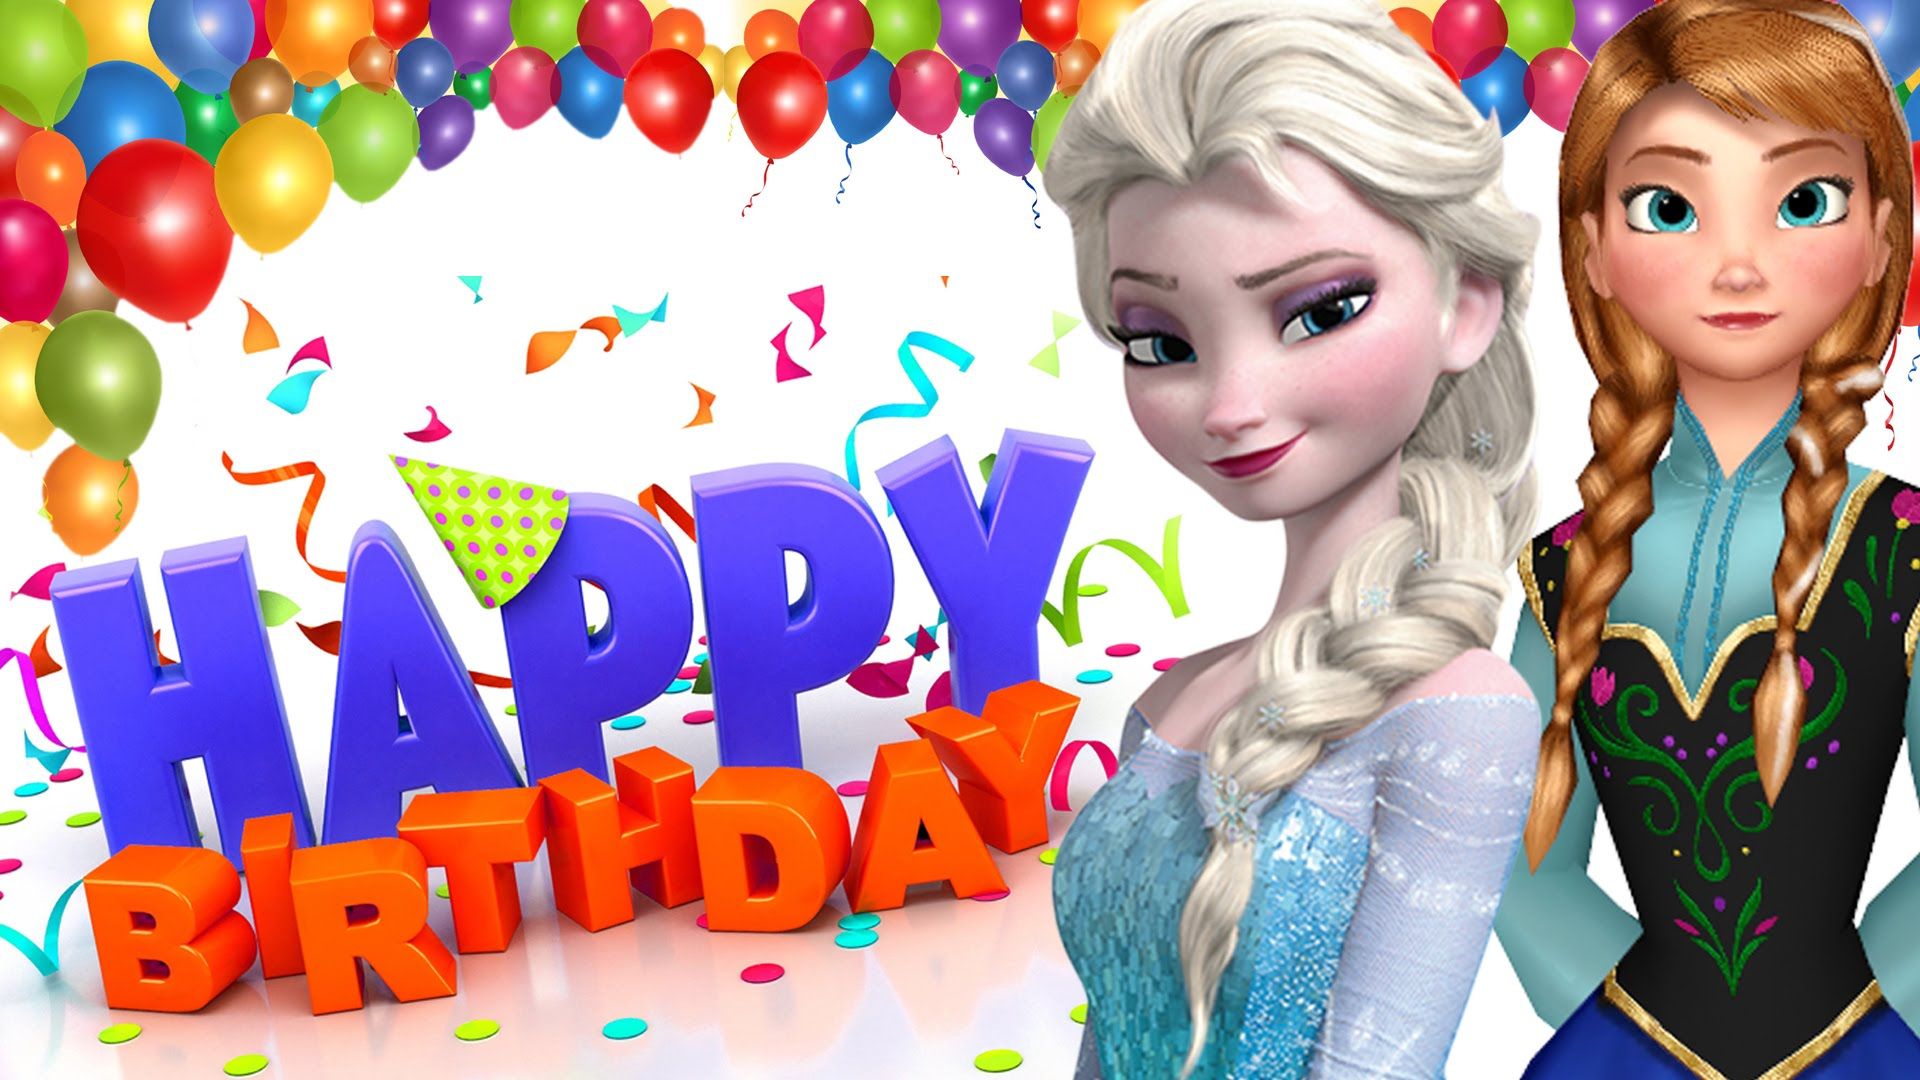 frozen birthday wallpaper ; cute-free-happy-birthday-greeting-cards-download